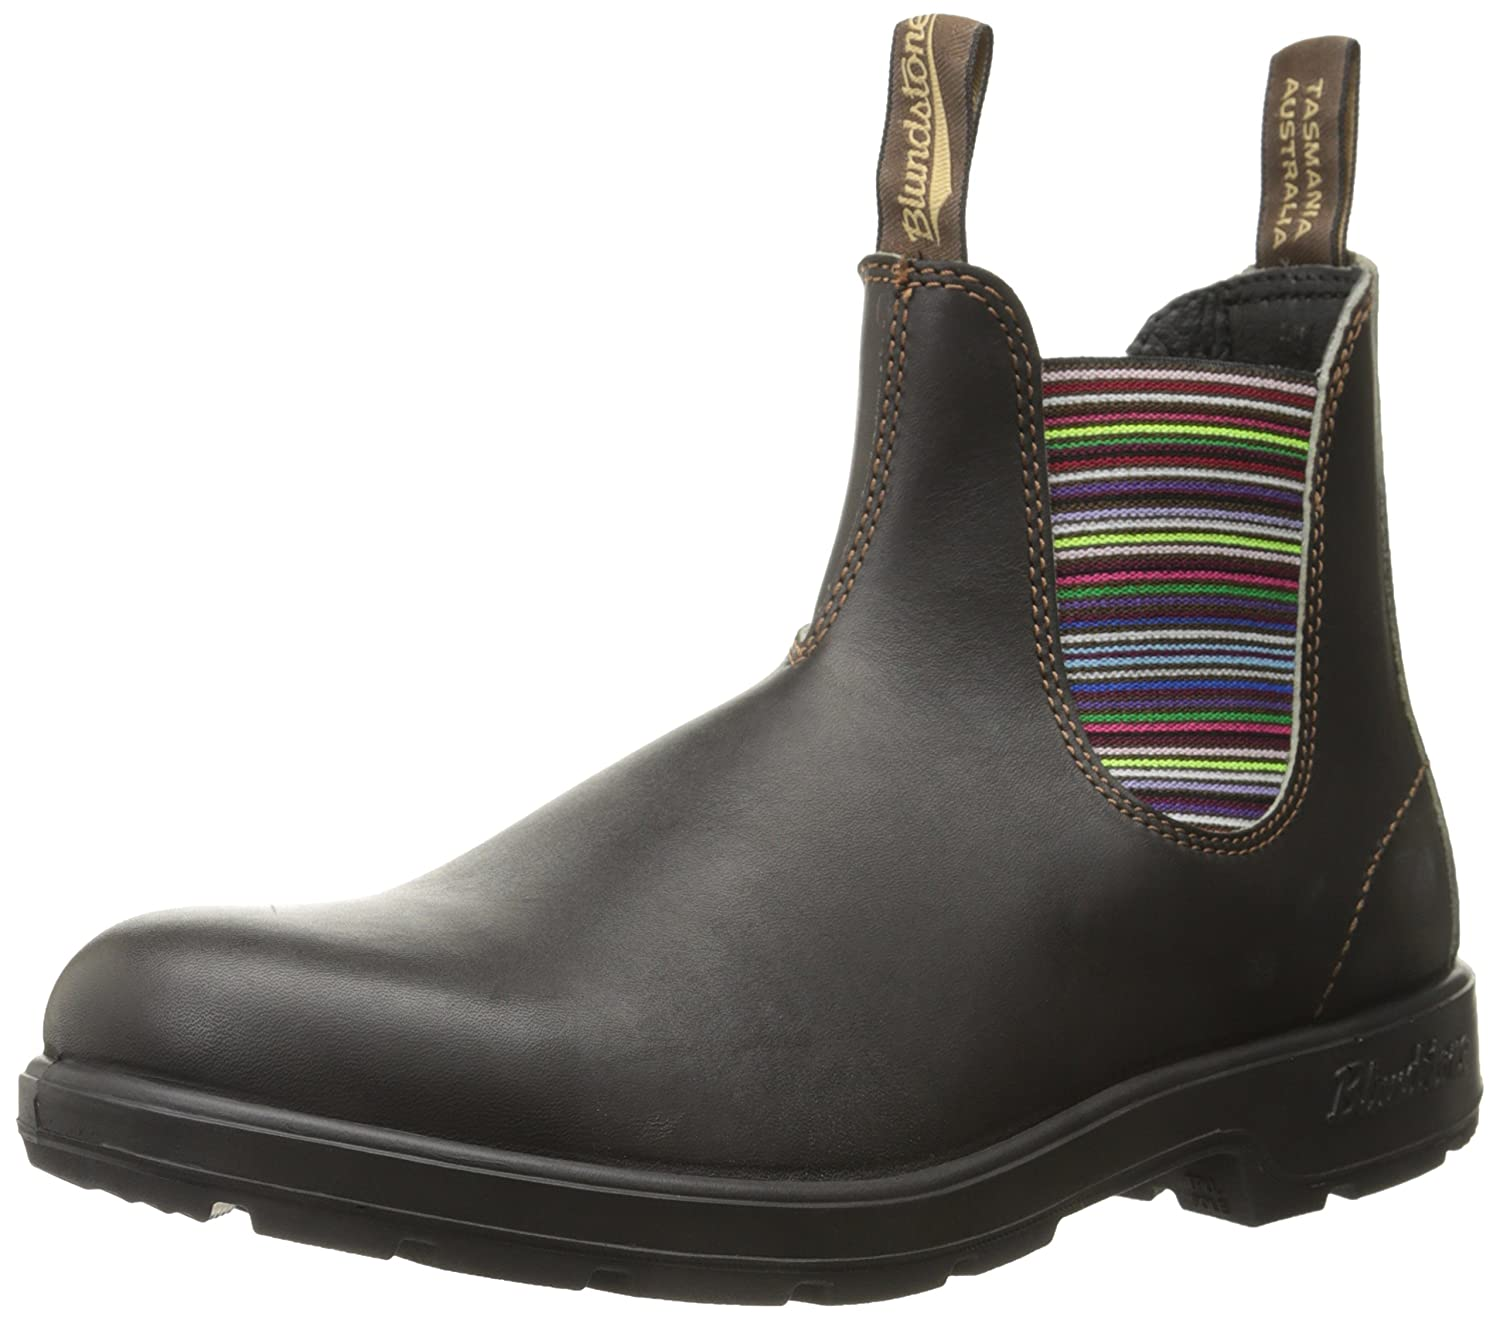 Blundstone Men's 1409 Round Toe Chelsea Boot B00IZ8IG78 4 D AU / 5 M US|Stout Brown